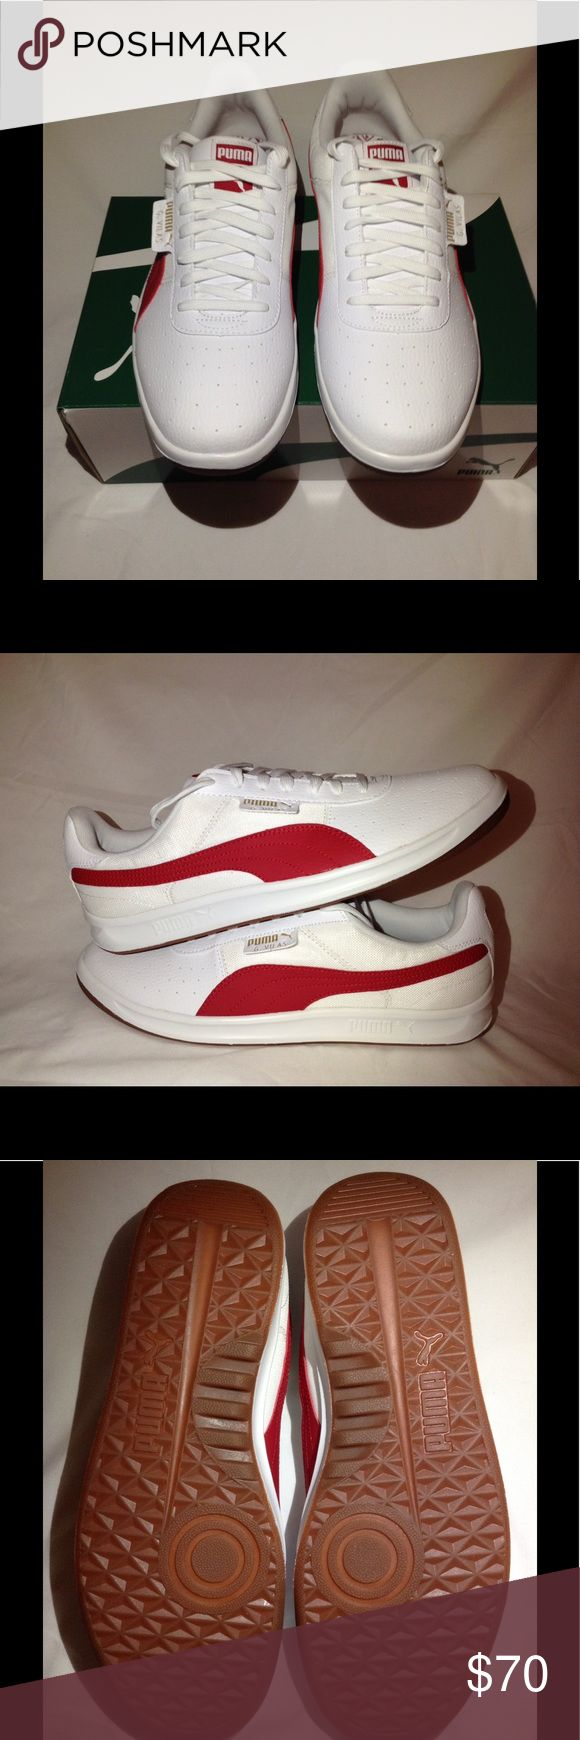 Puma G. Vilas 2 Core Never Worn New with Box Puma Casual Sneakers Puma Shoes Sneakers